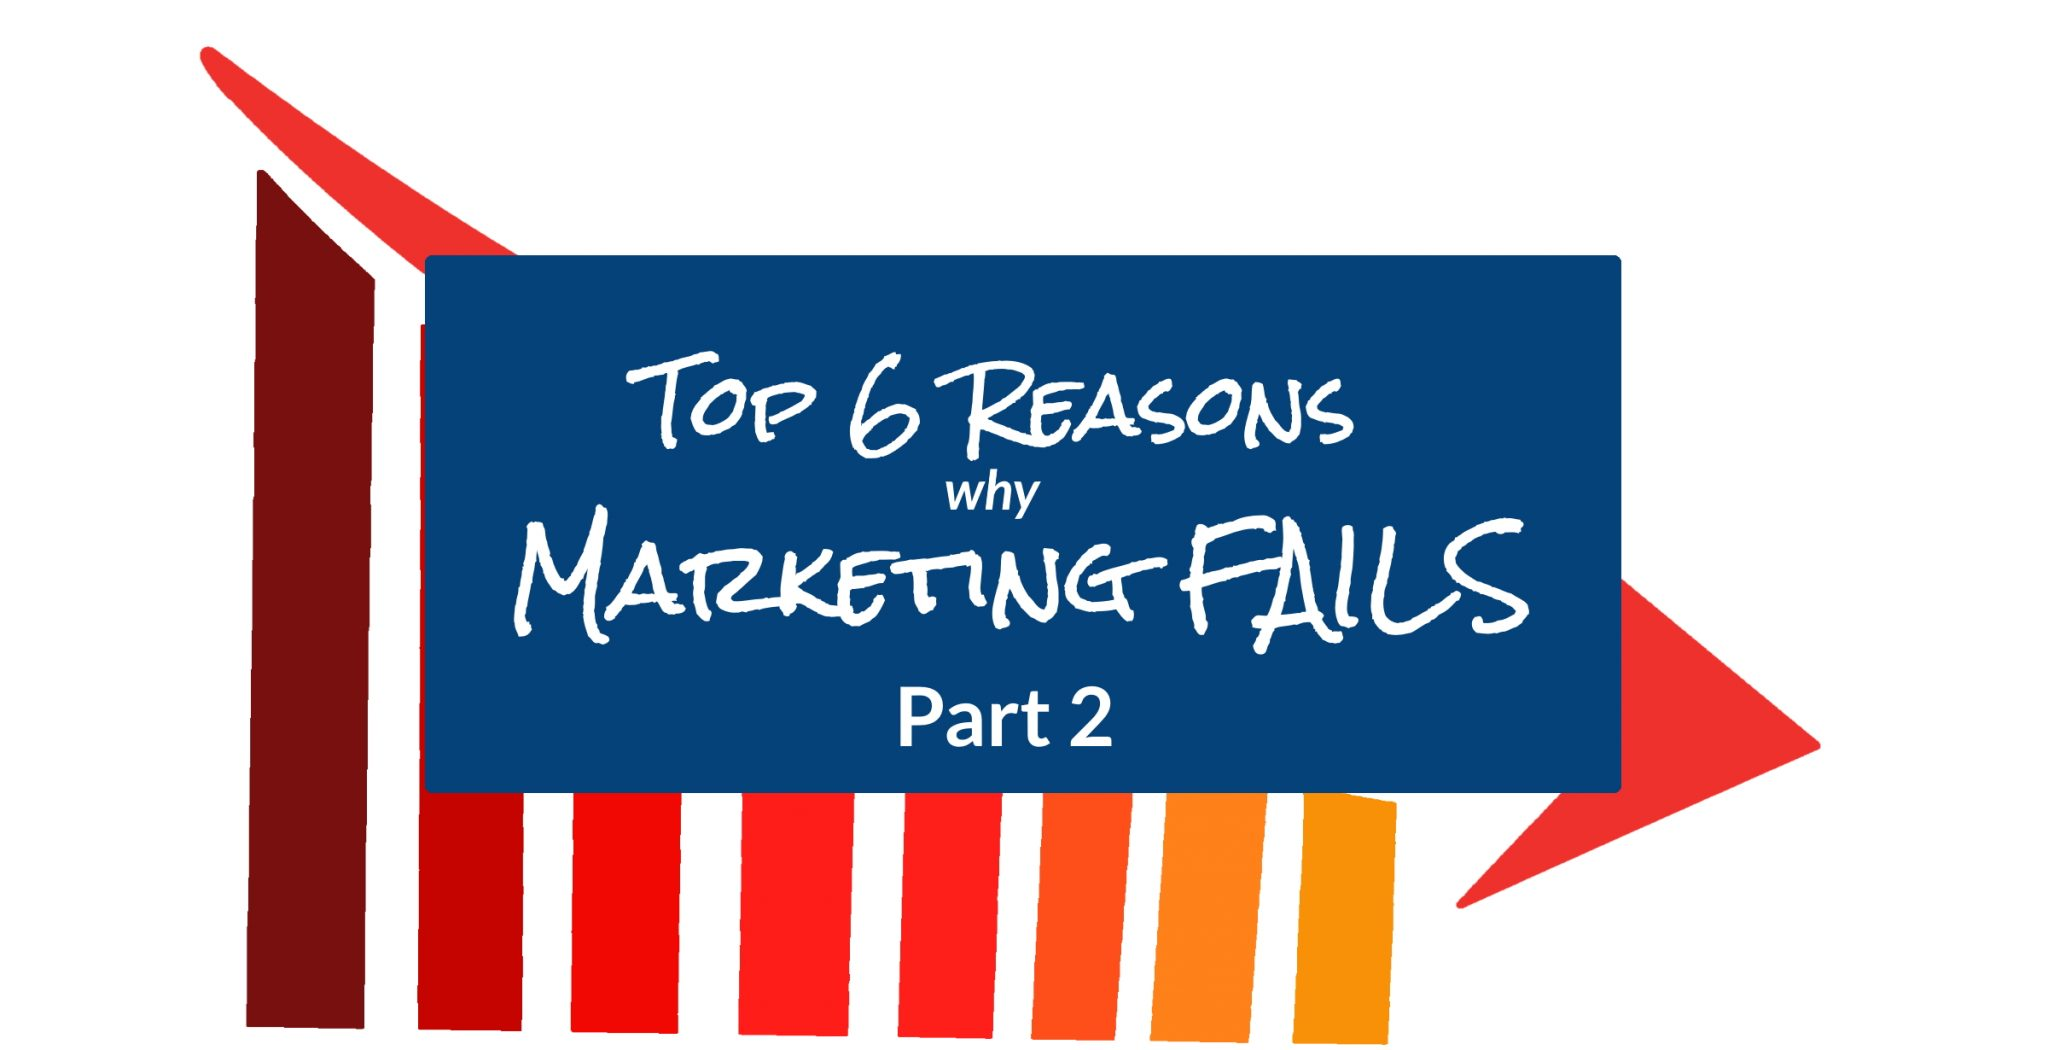 Top 6 Reasons Why Marketing Fails - Part 2 2